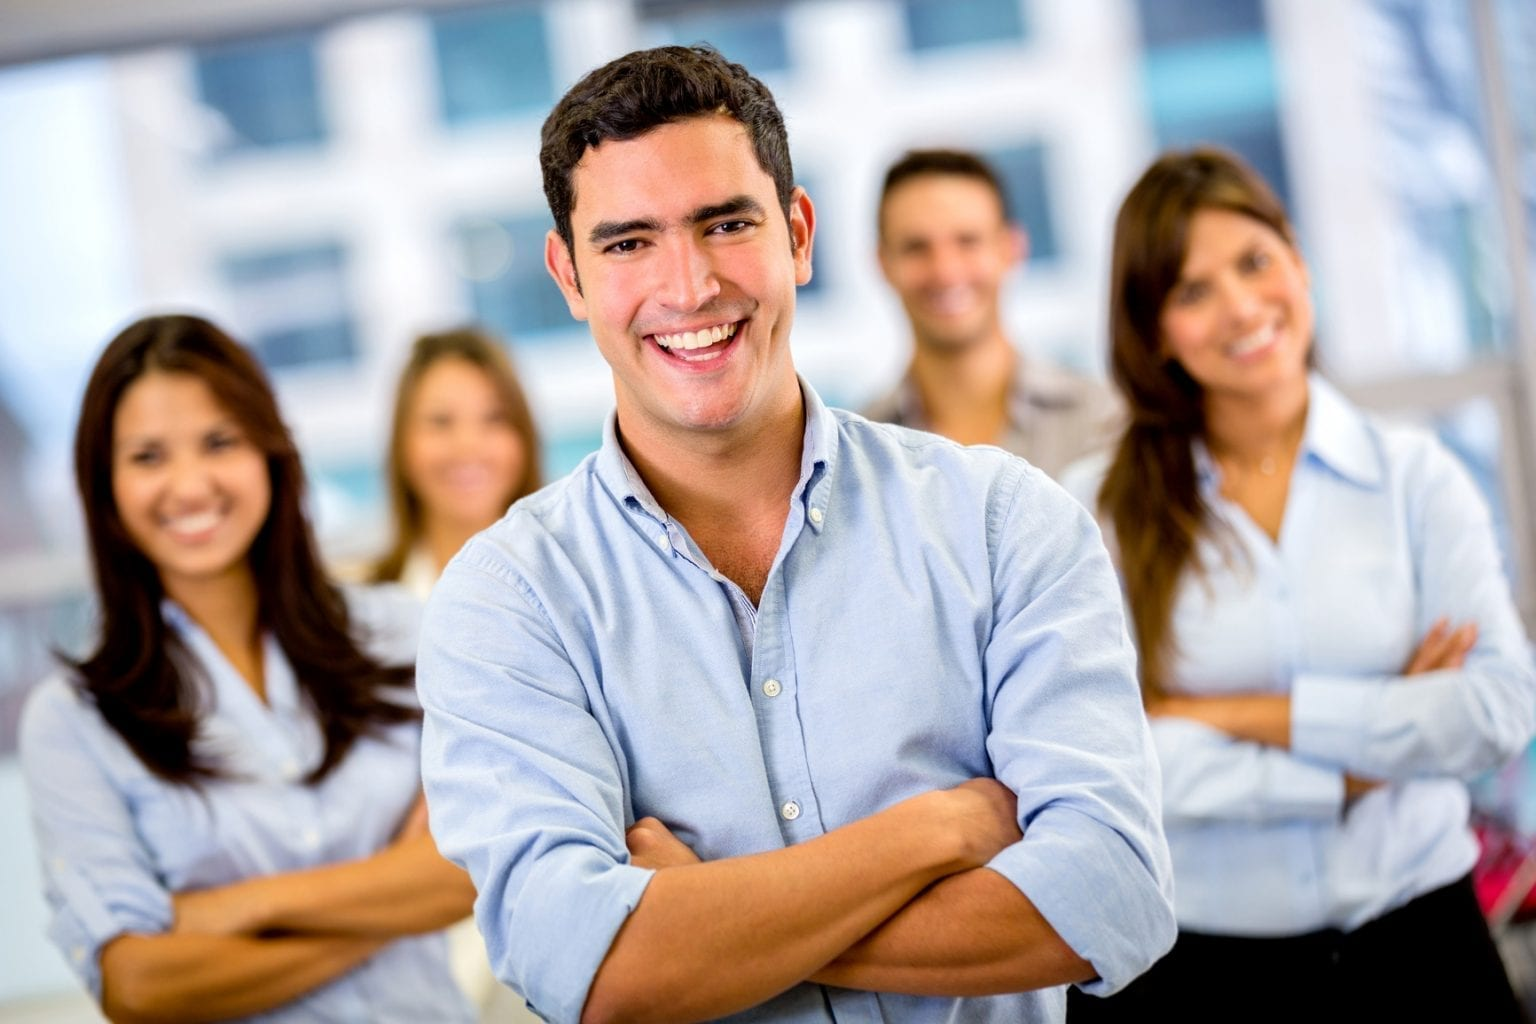 Allied Health Support Services Happy Business Team Image